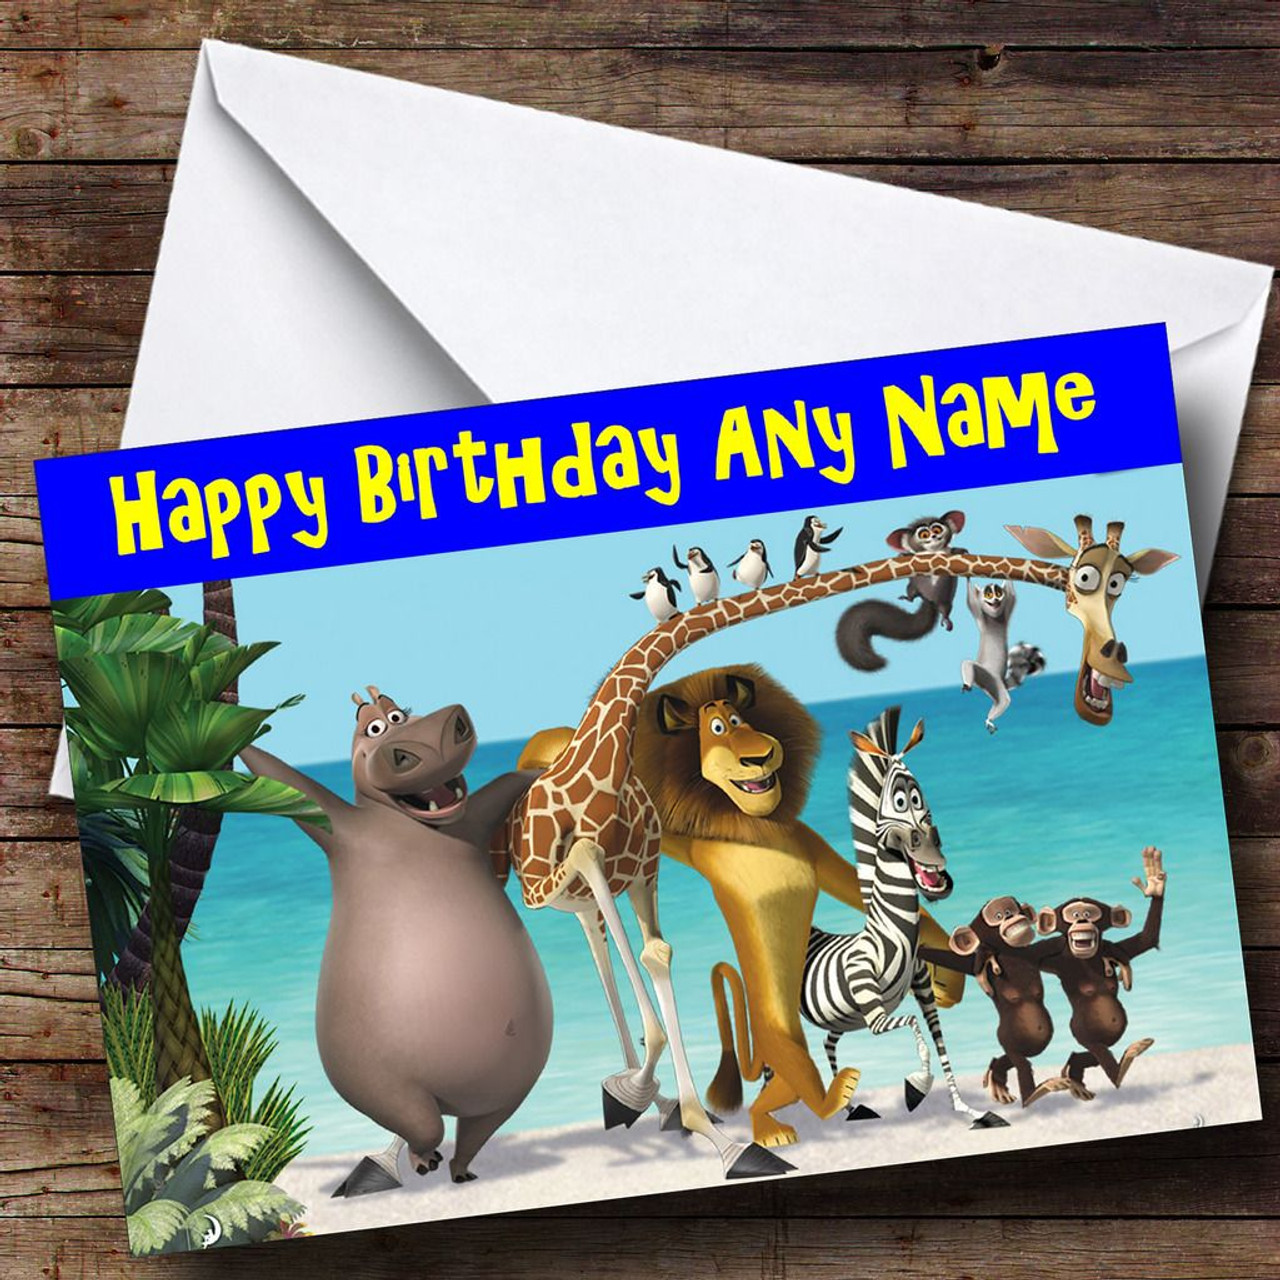 Personalised Cards - Birthday Cards - Kids TV & Film Character Cards ...